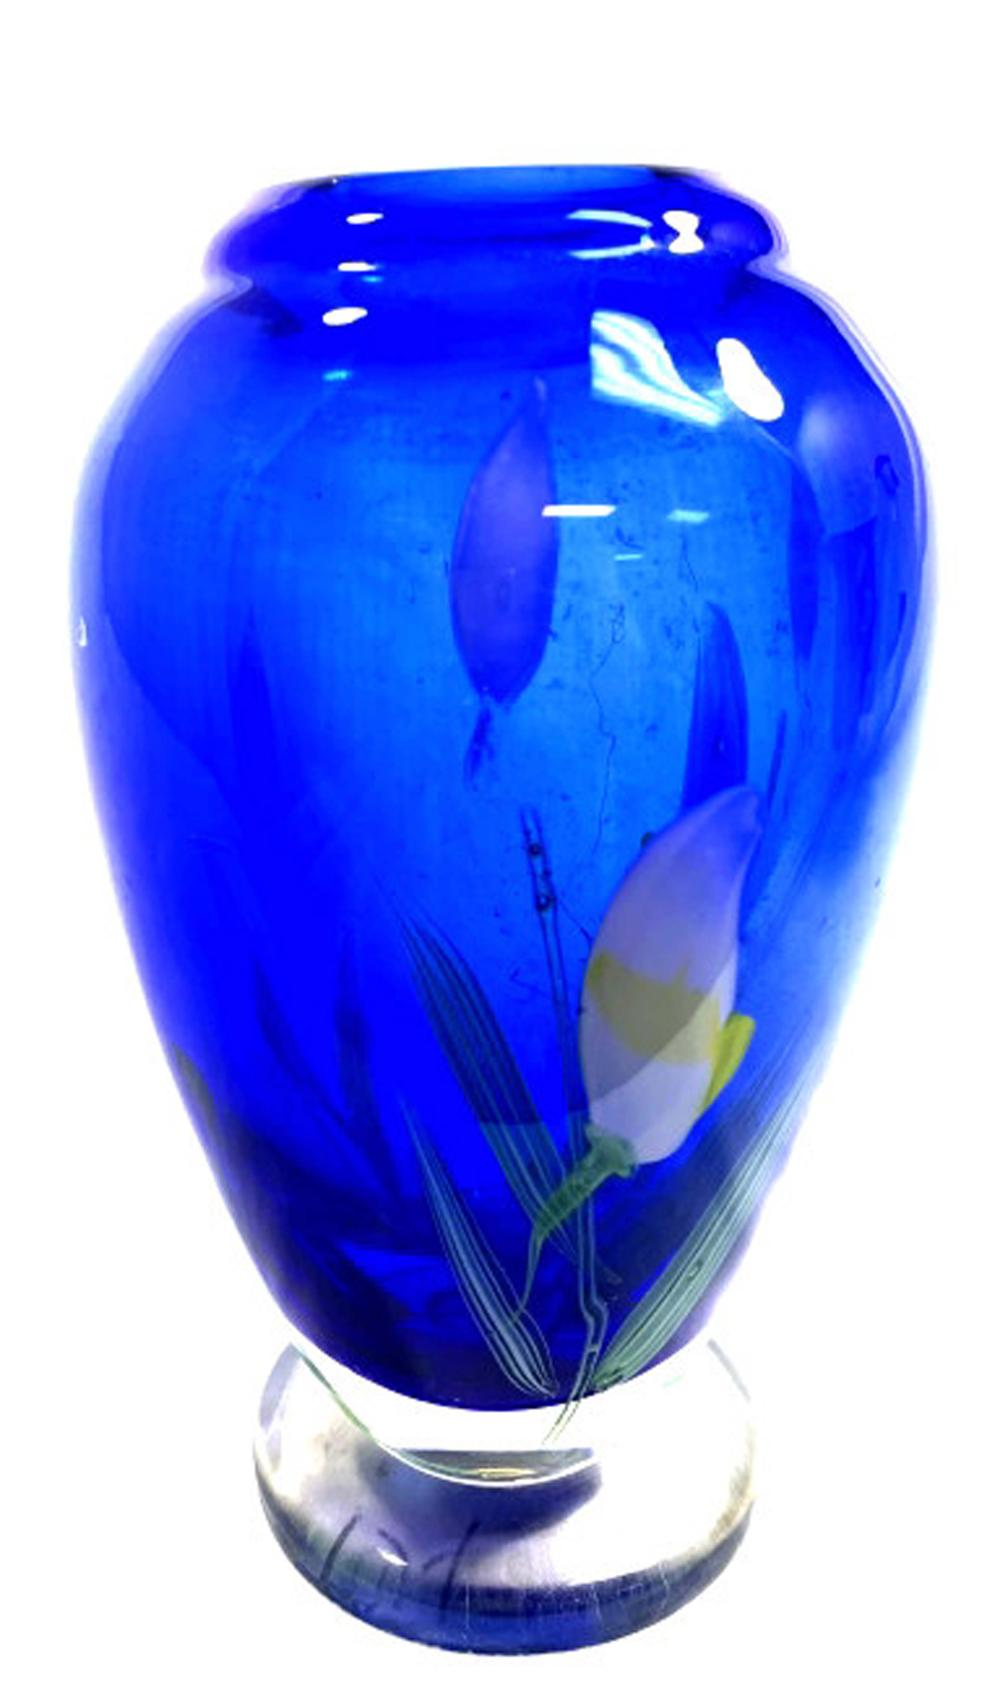 PRETTY FLORAL INFUSED BLUE TO CLEAR ART GLASS VASE